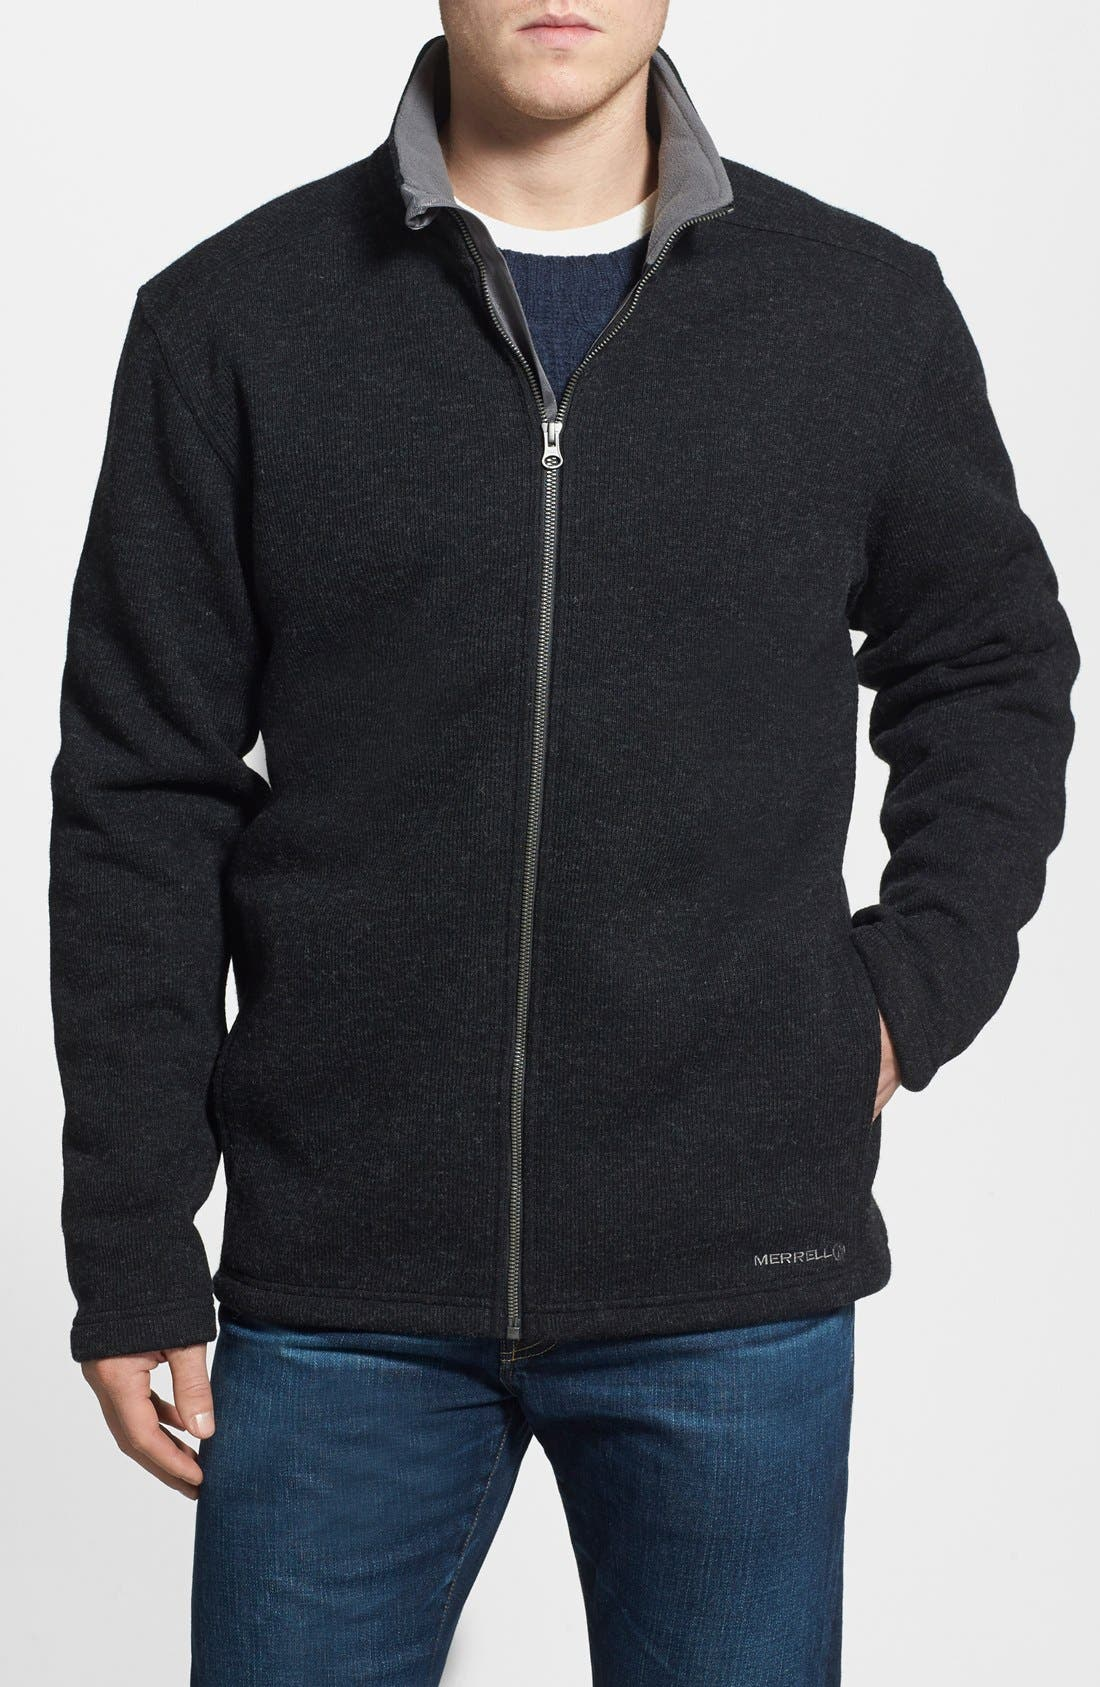 Main Image - Merrell 'Big Sky' Fleece Knit Jacket (Online Only)